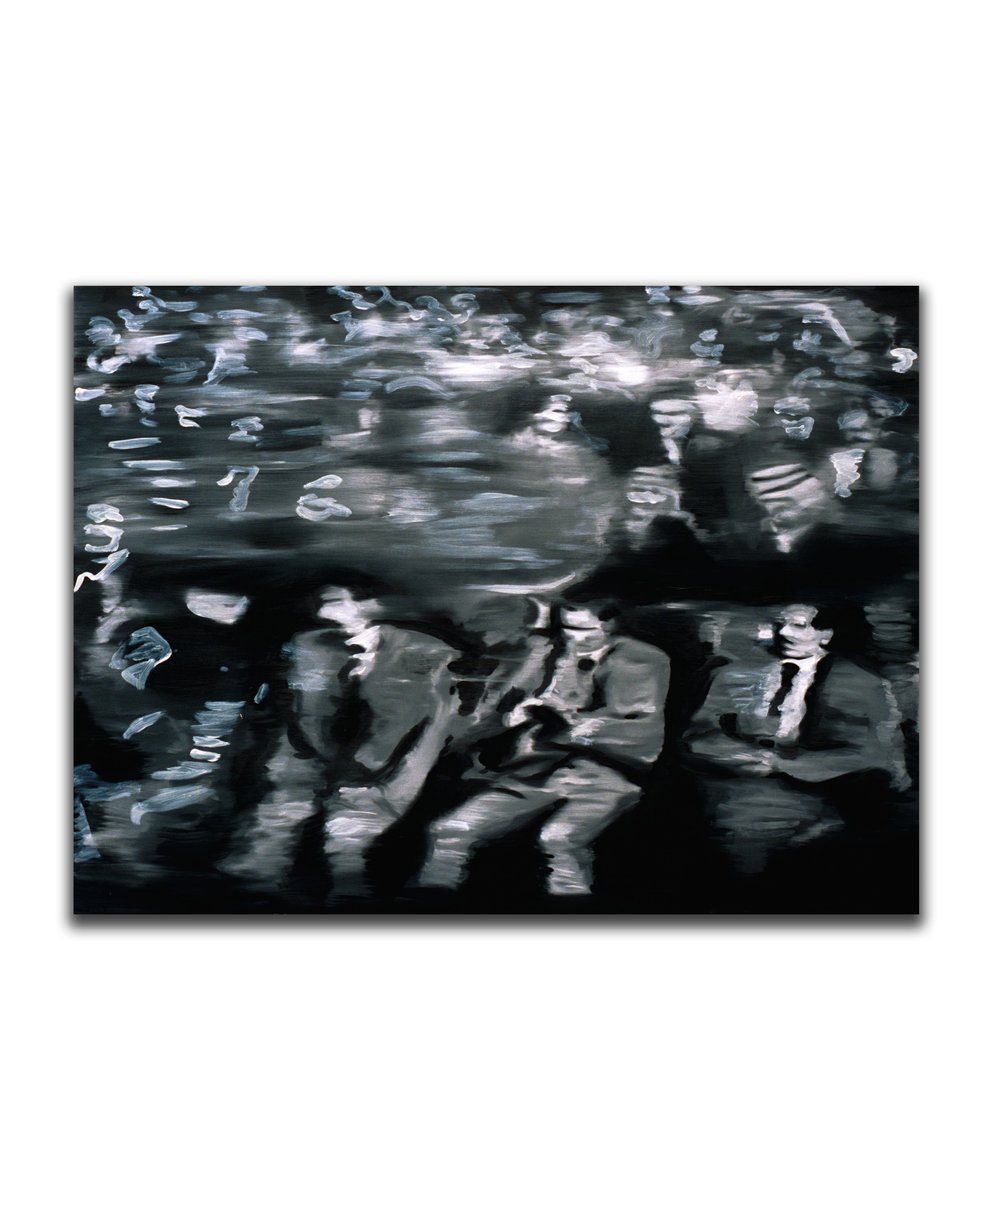 Ghost Conspirators. Oil on canvas. 36 x 48 in. 2007